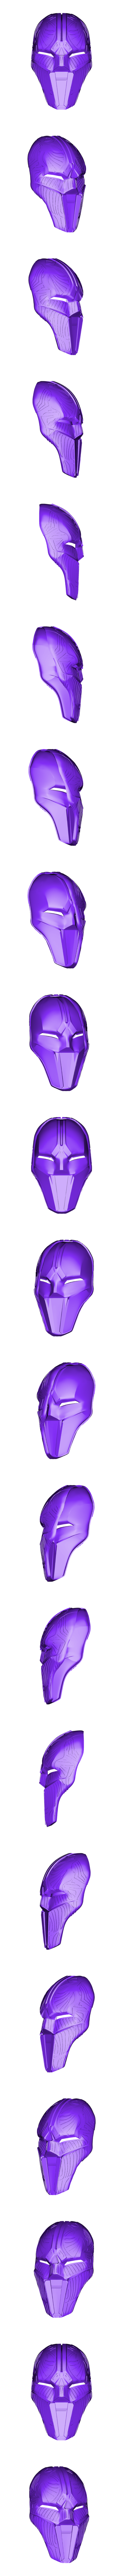 Sith_Acolyte_Mask_v4.stl Download free STL file Sith Acolyte Mask (Star Wars) • 3D printing object, VillainousPropShop